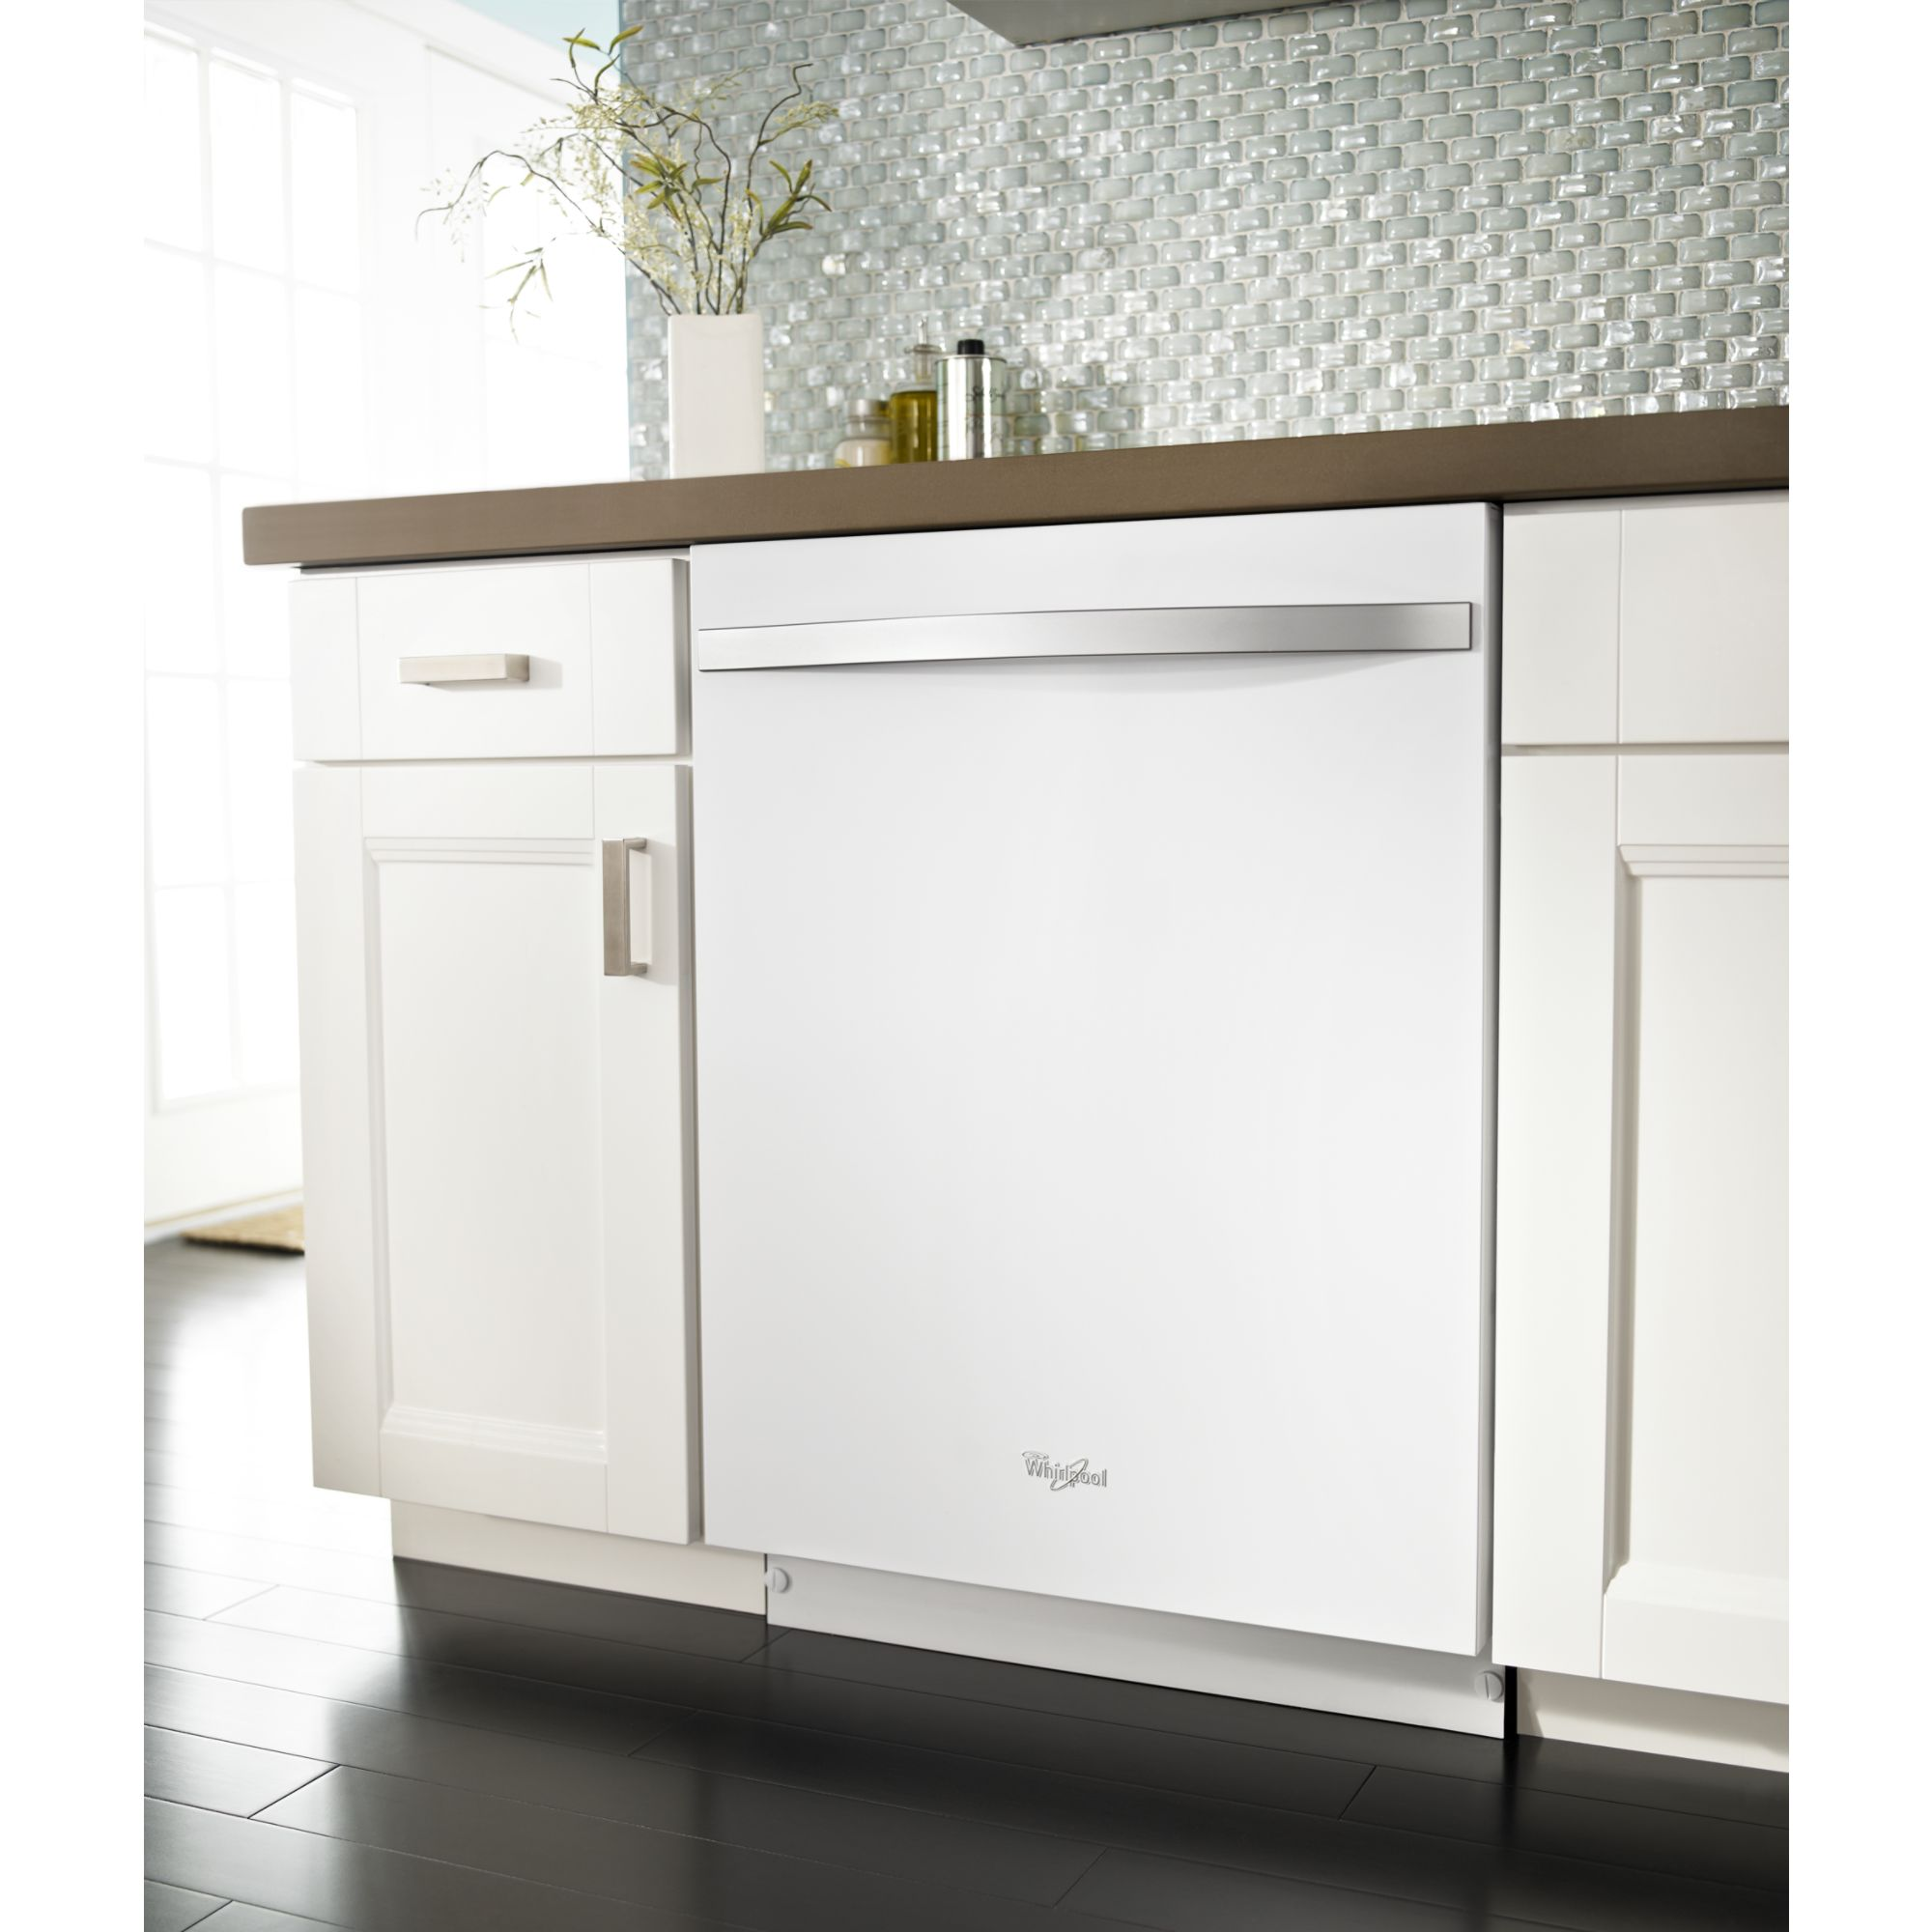 "Whirlpool 24"" Built-In Dishwasher w/ PowerScour™ Option - White Ice"